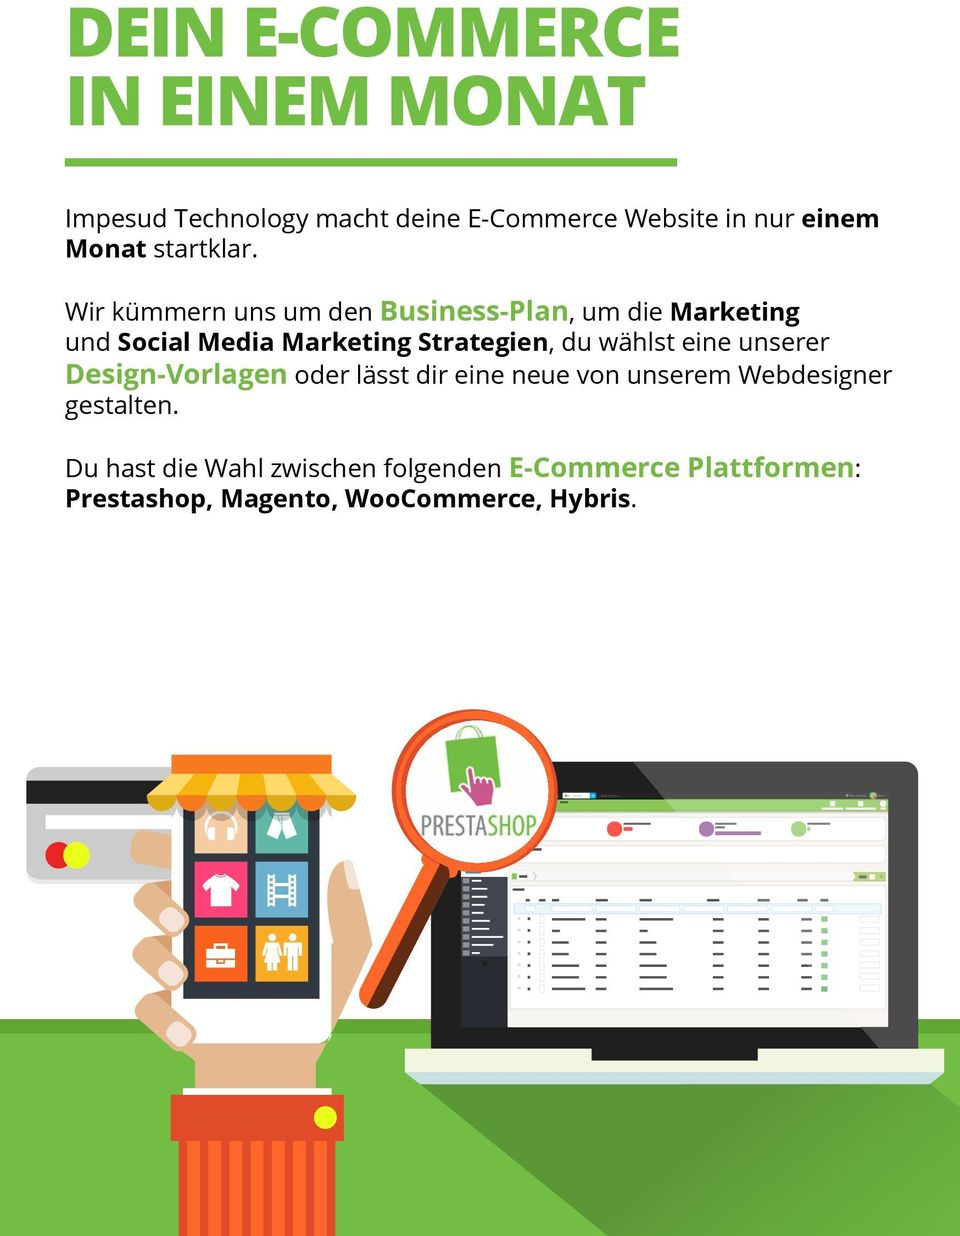 Wir kümmern uns um den Business-Plan, um die Marketing und Social Media Marketing Strategien, du